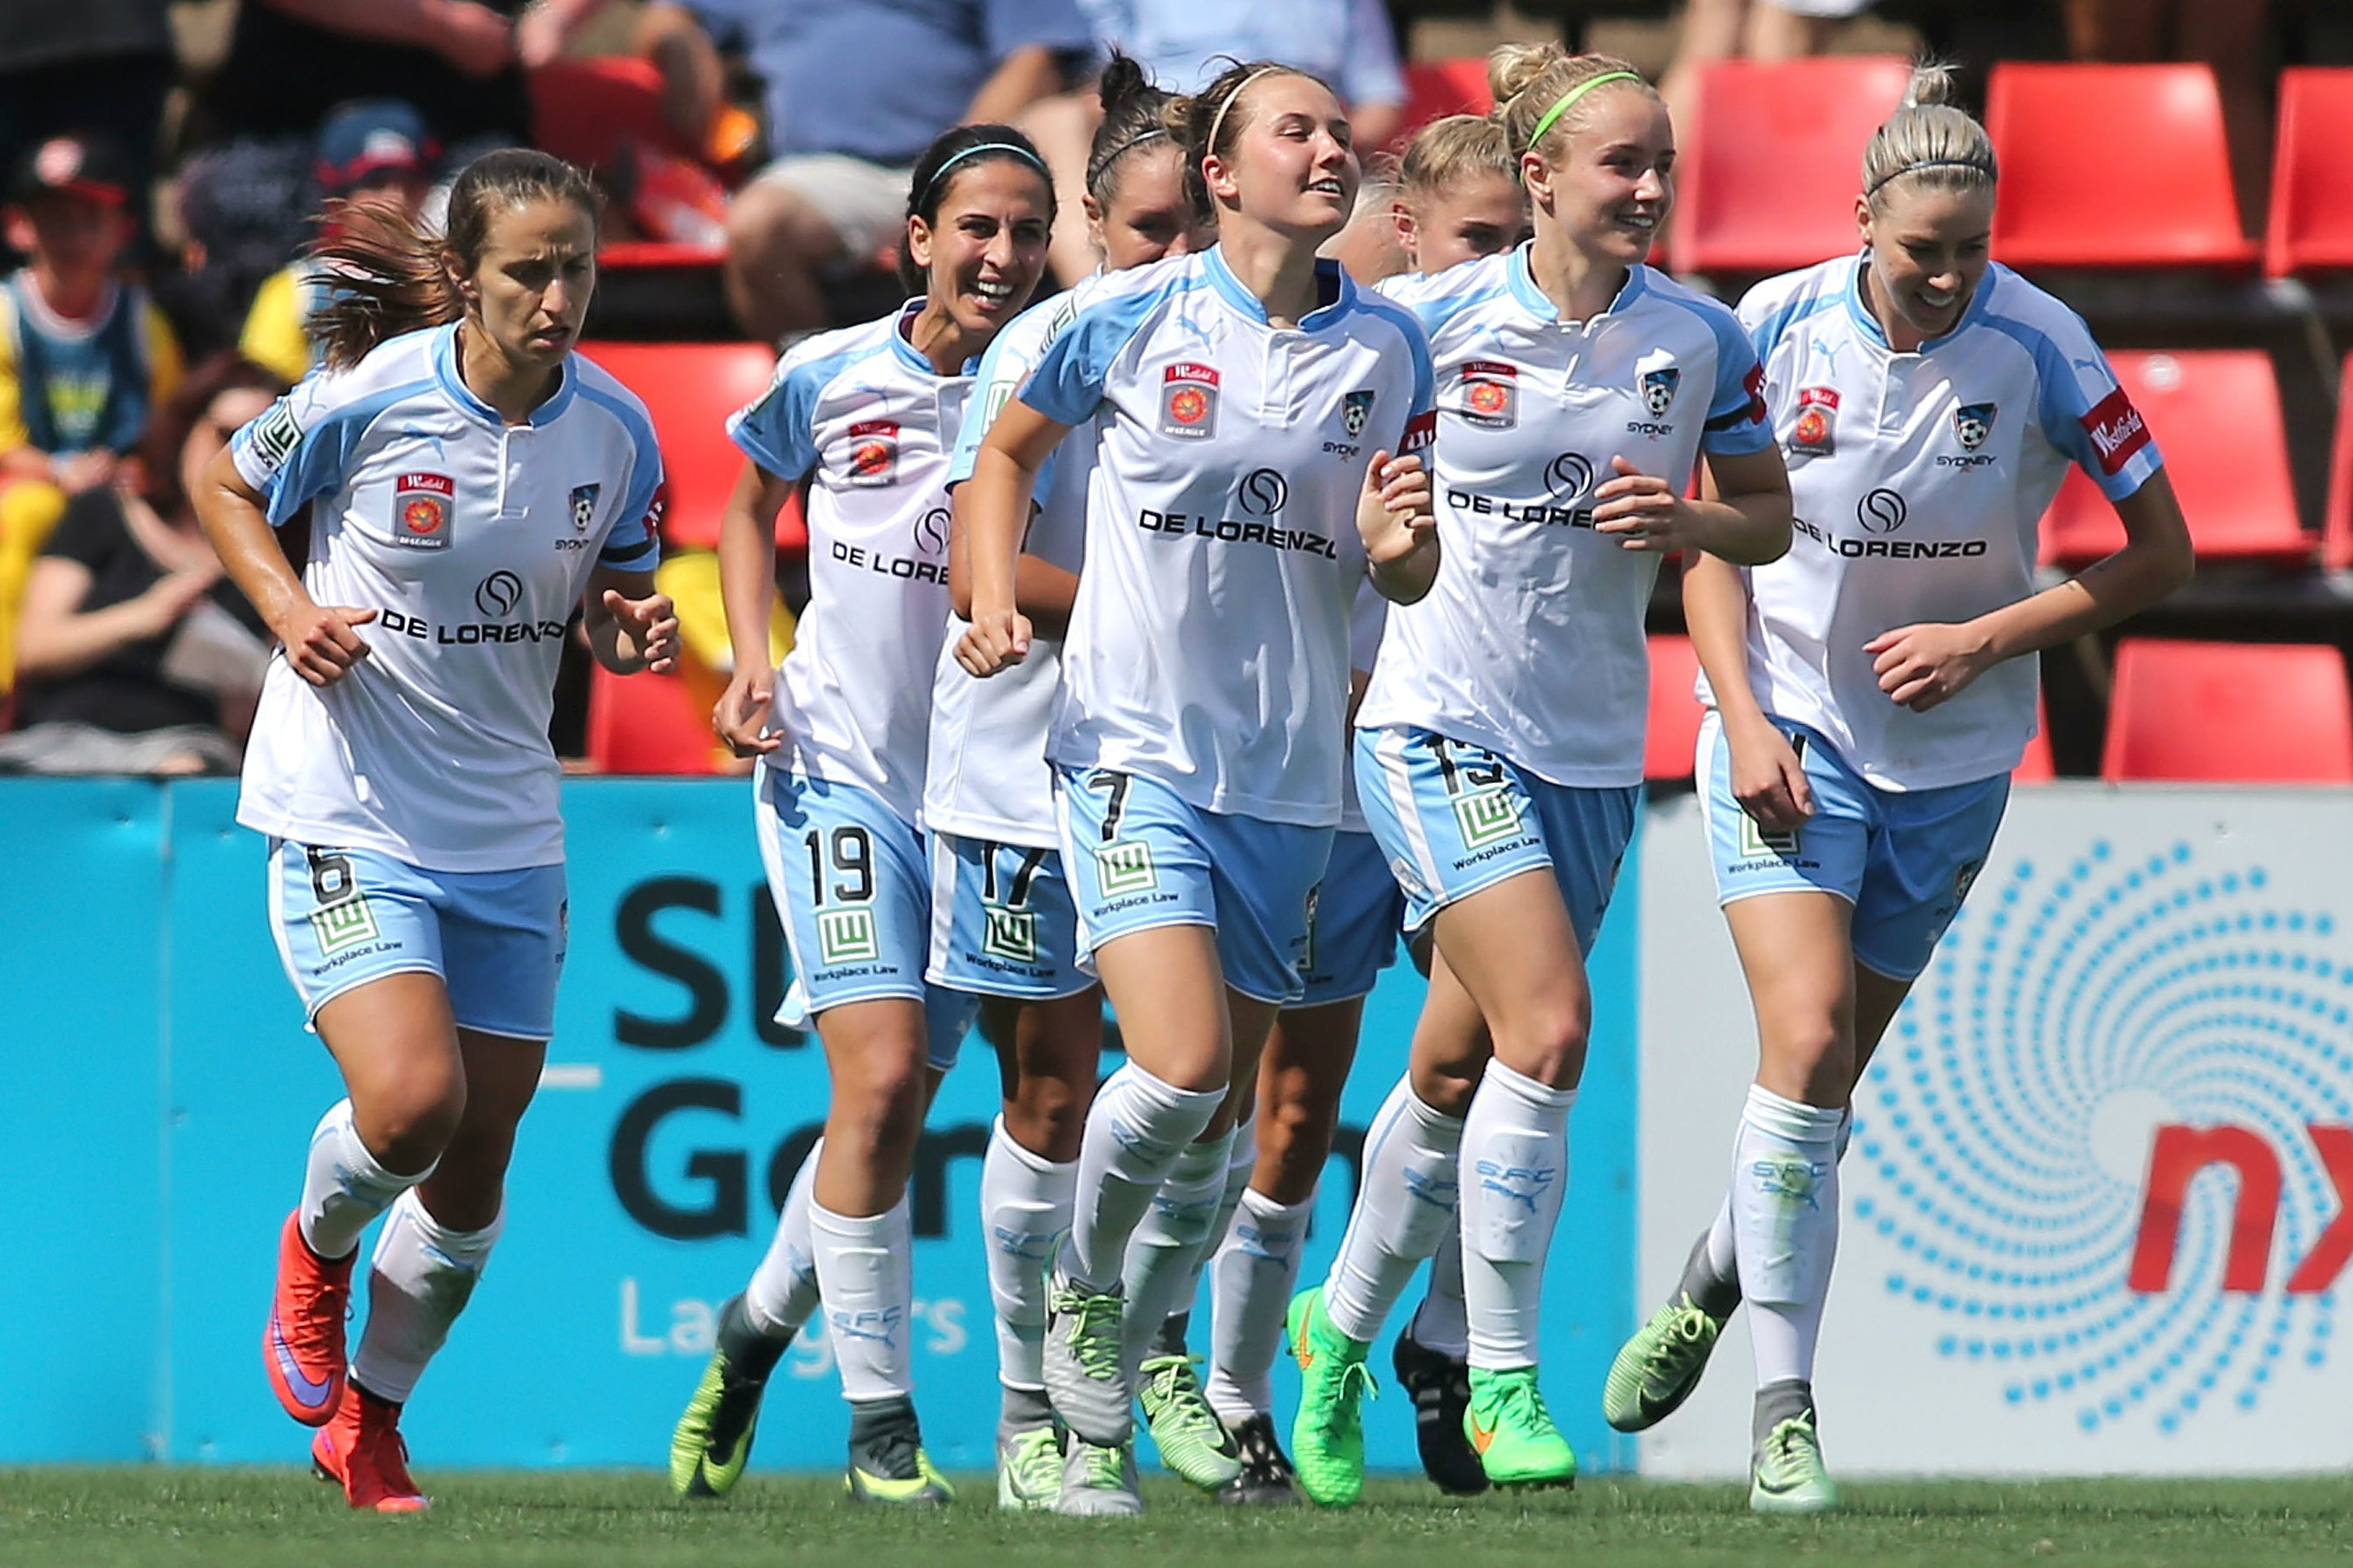 Sydney FC has qualified for the Westfield W-League Finals Series every season.